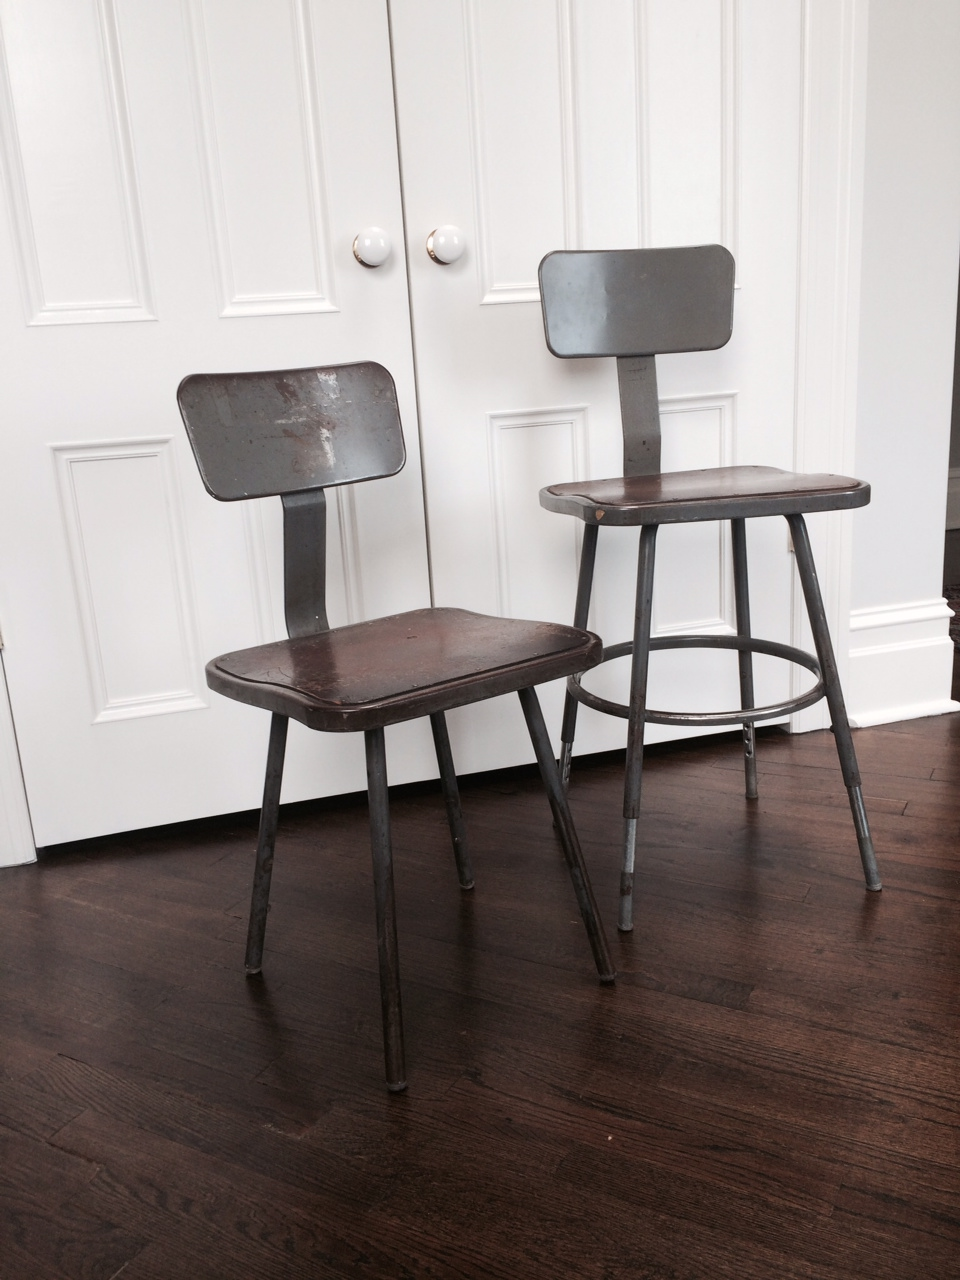 adjustable height stools with backs $60/ea